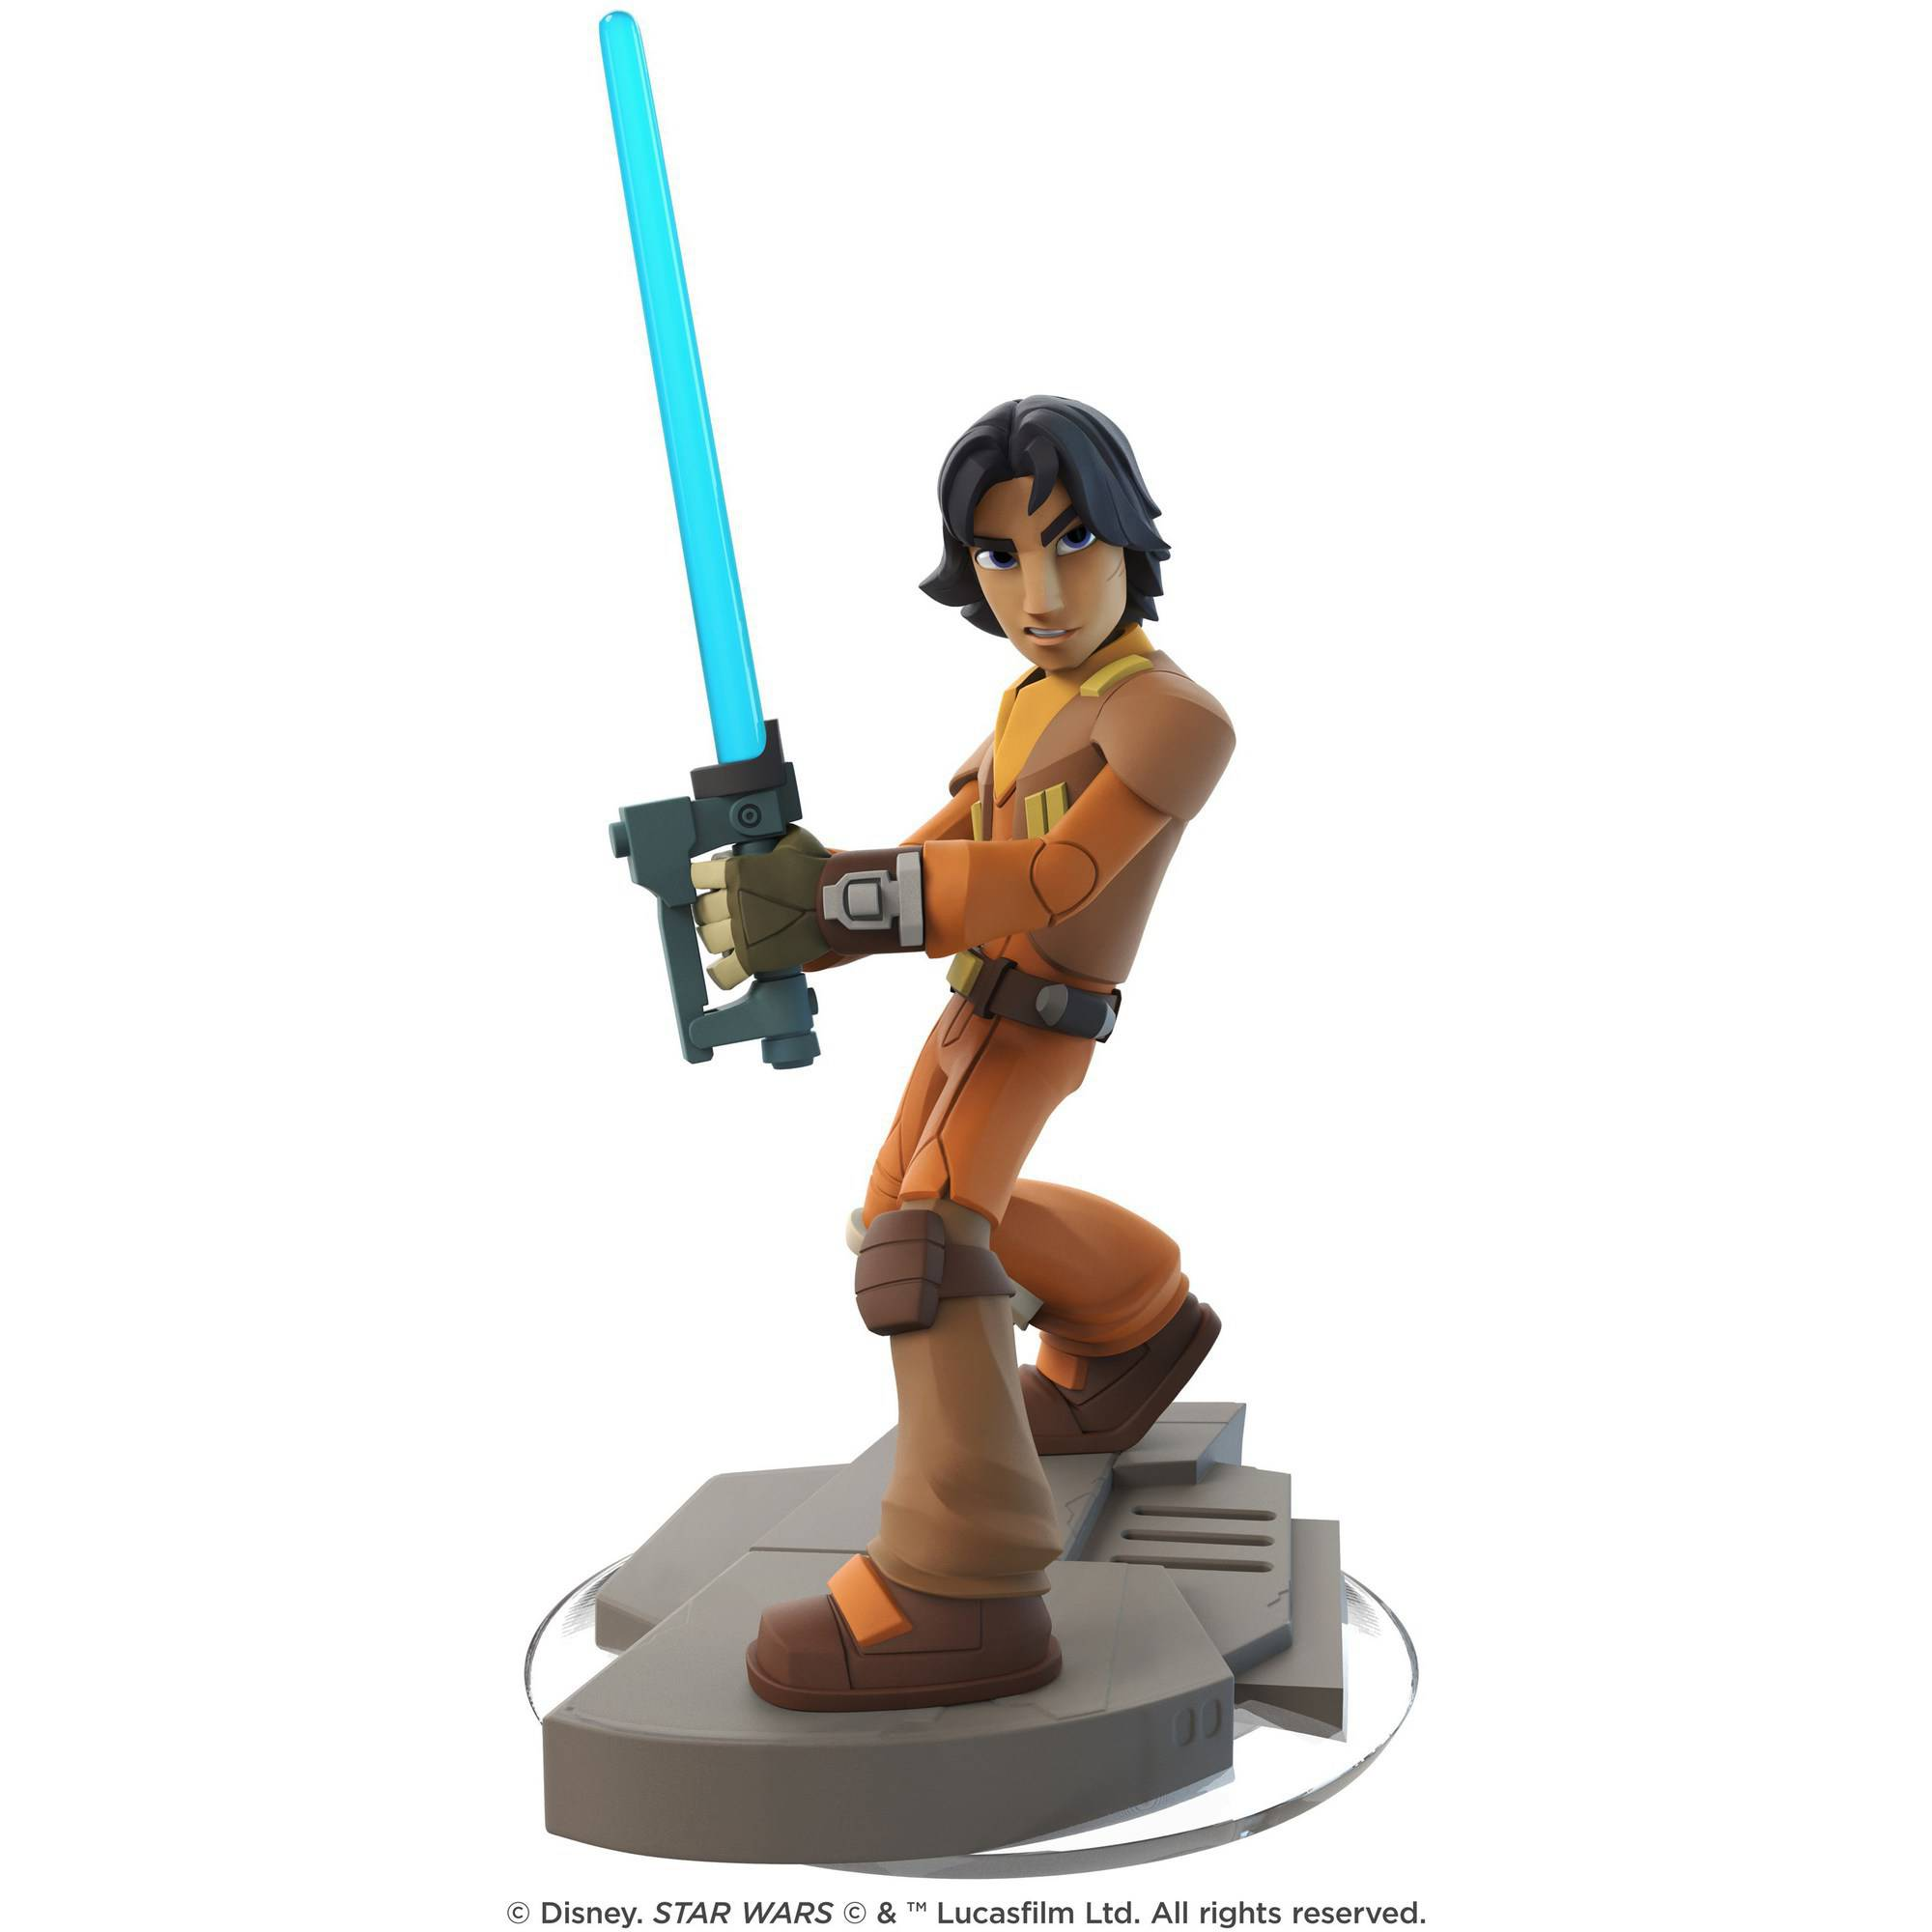 Disney Infinity 3.0 Star Wars - Ezra Bridger